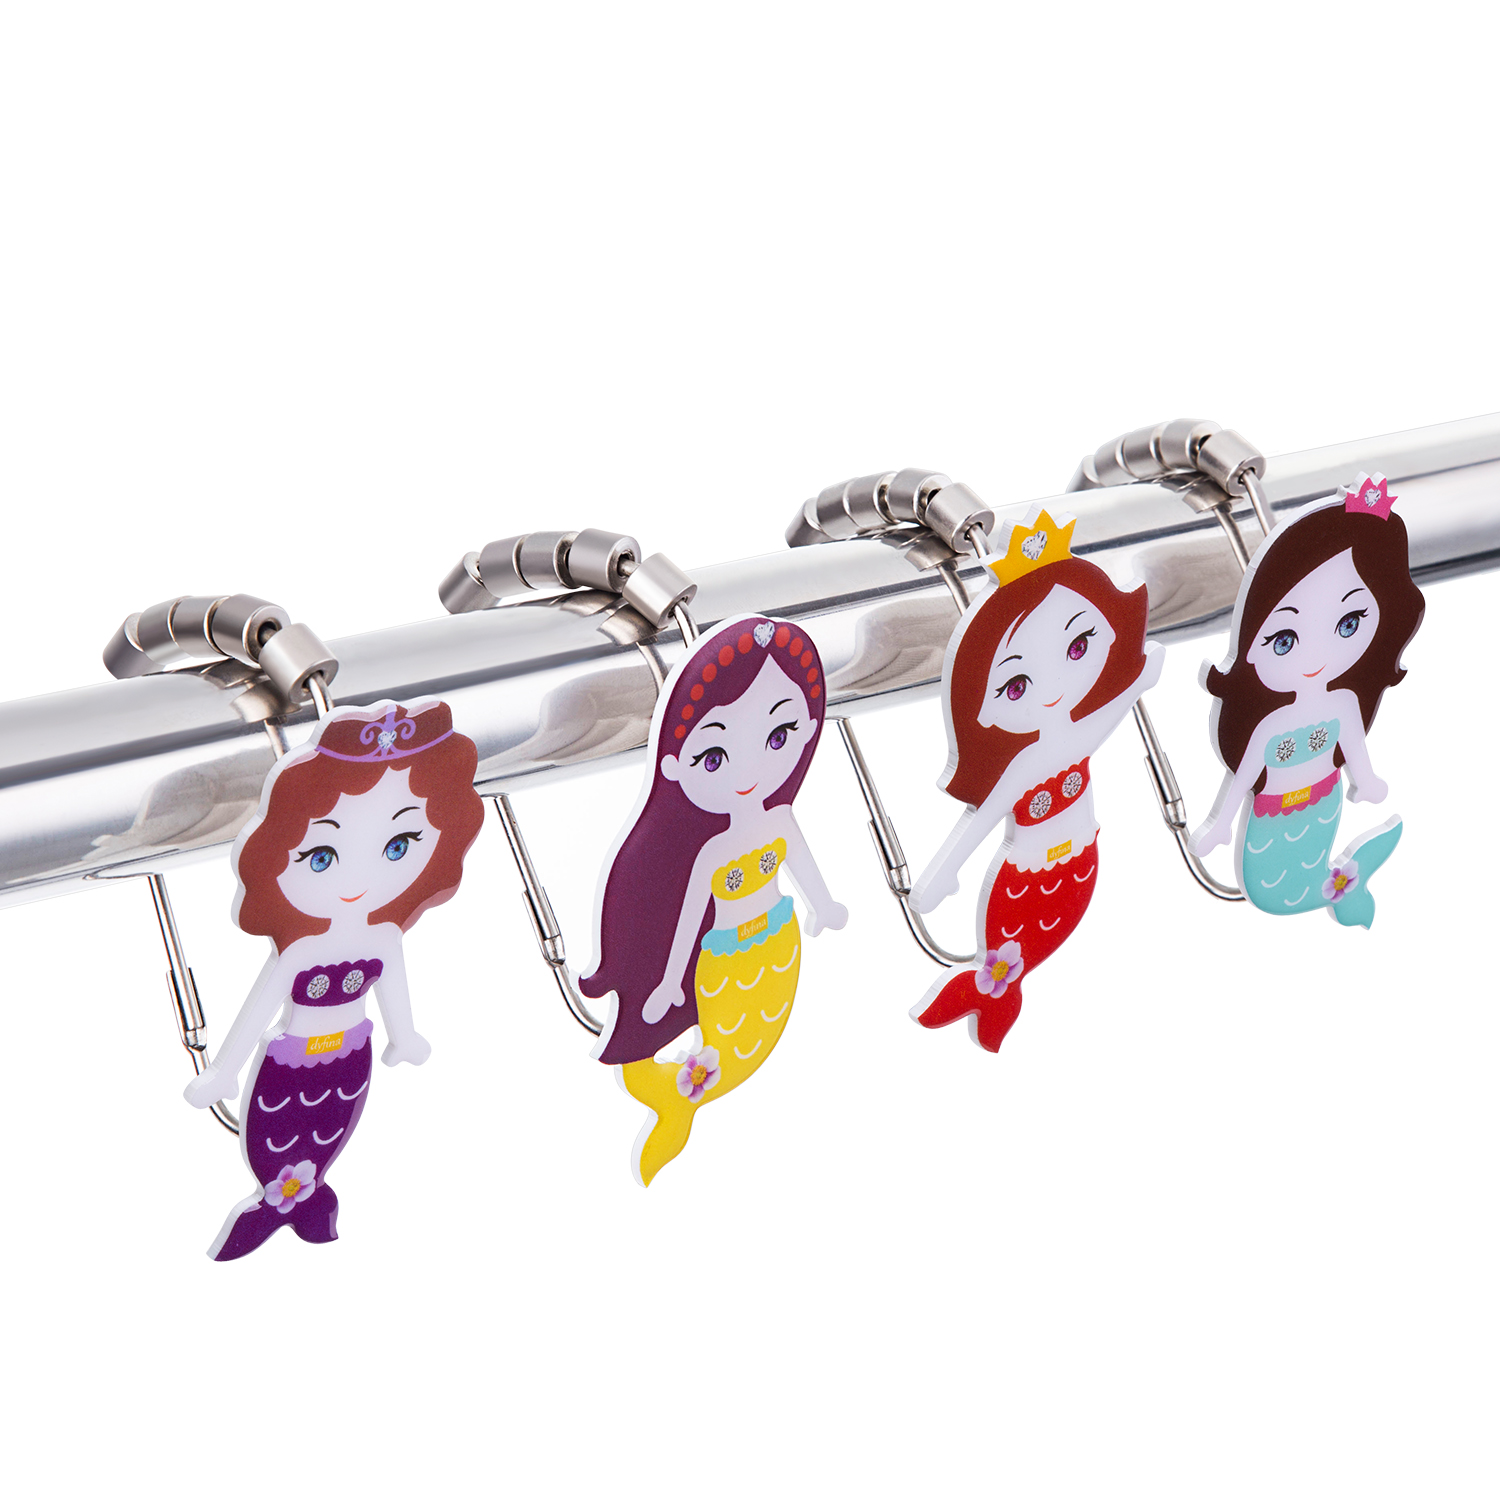 Unique Mermaid Shower Curtain Hooks Set of 12